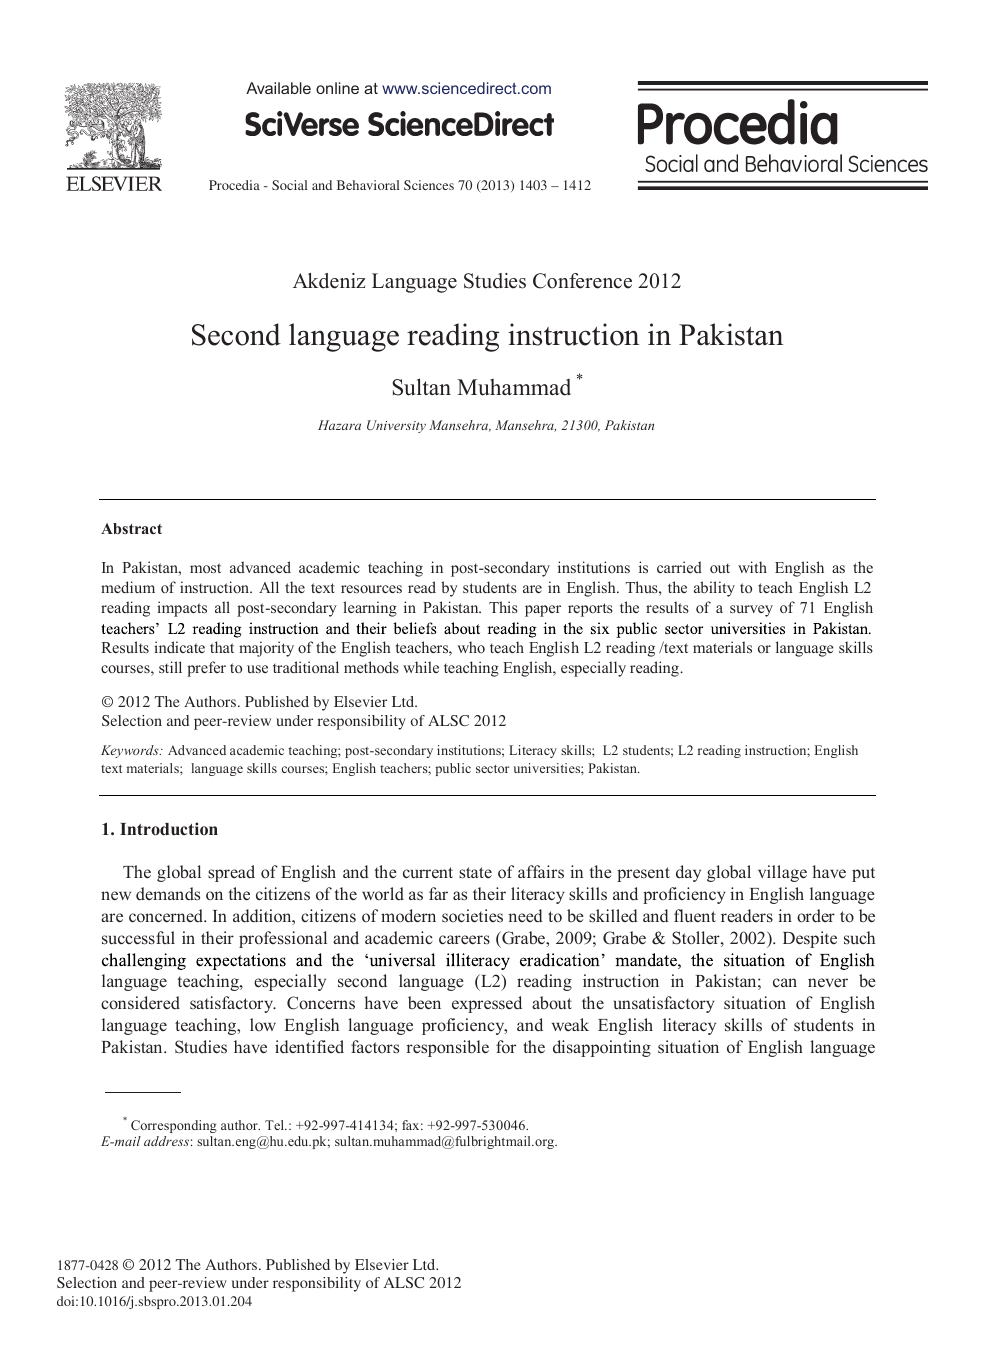 Second language reading instruction in Pakistan – topic of